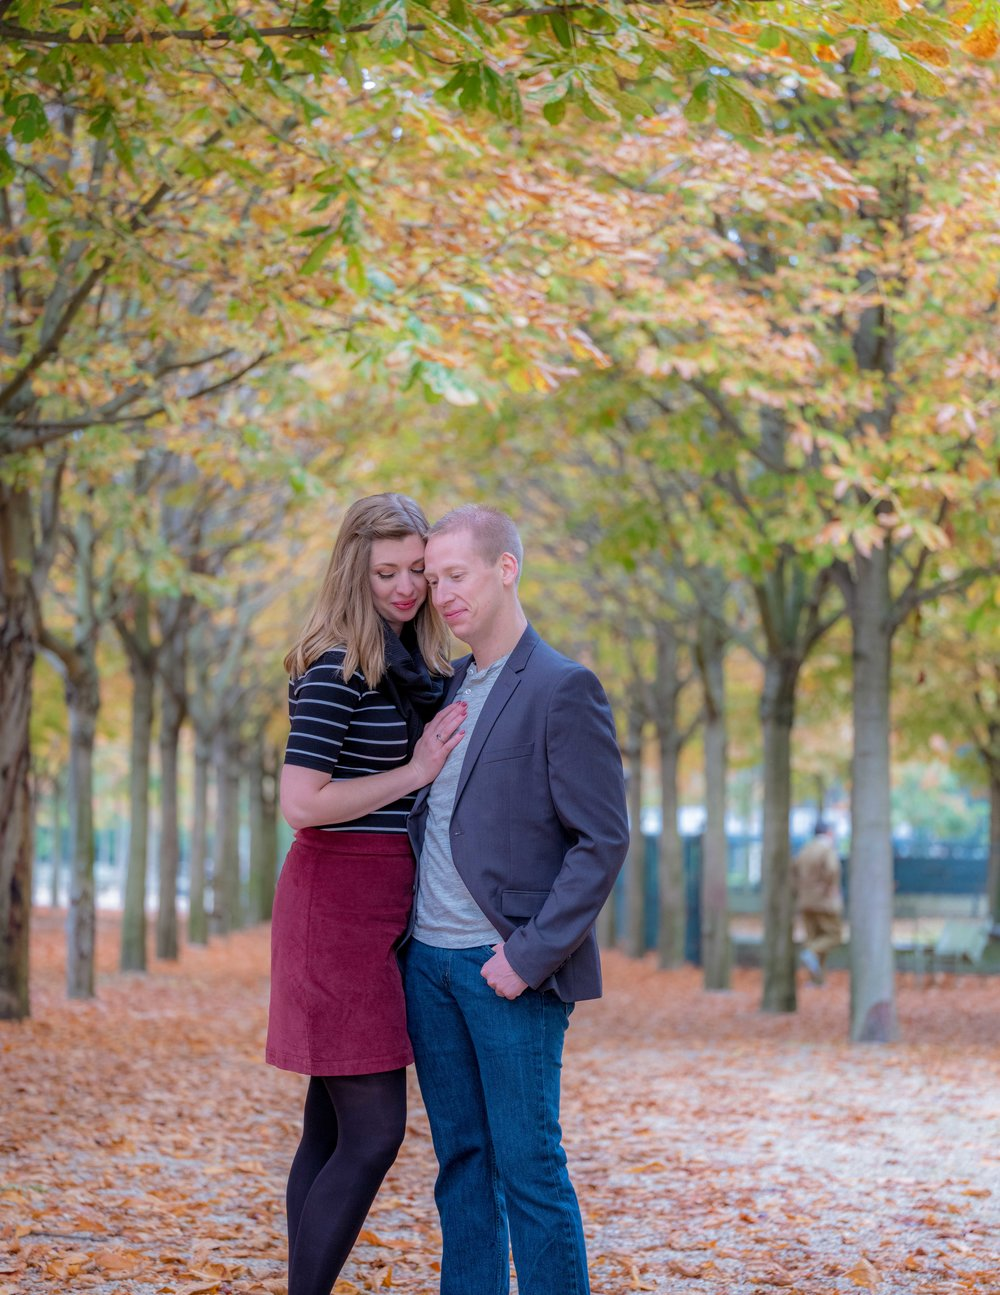 megan & justin - An early autumn's morning, spent with this charming and funny couple. What better way to spend your time in Paris? I loved their easygoing style and I'm so thankful for the opportunity to meet and photograph them!See more images here